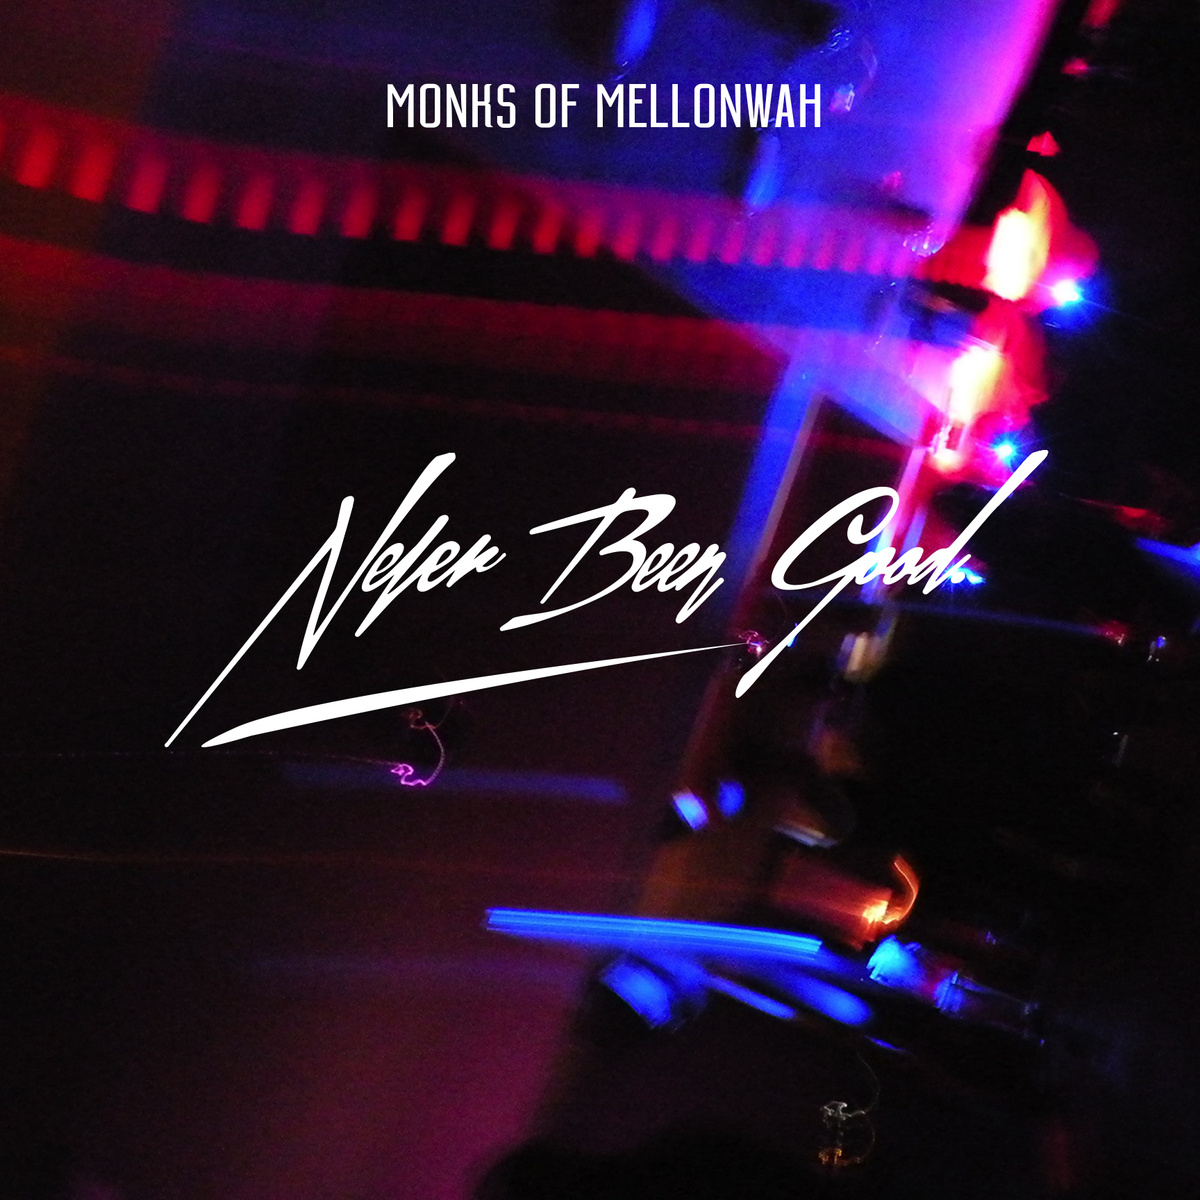 CD Single Review: Never Been Good By Monks of Mellonwah